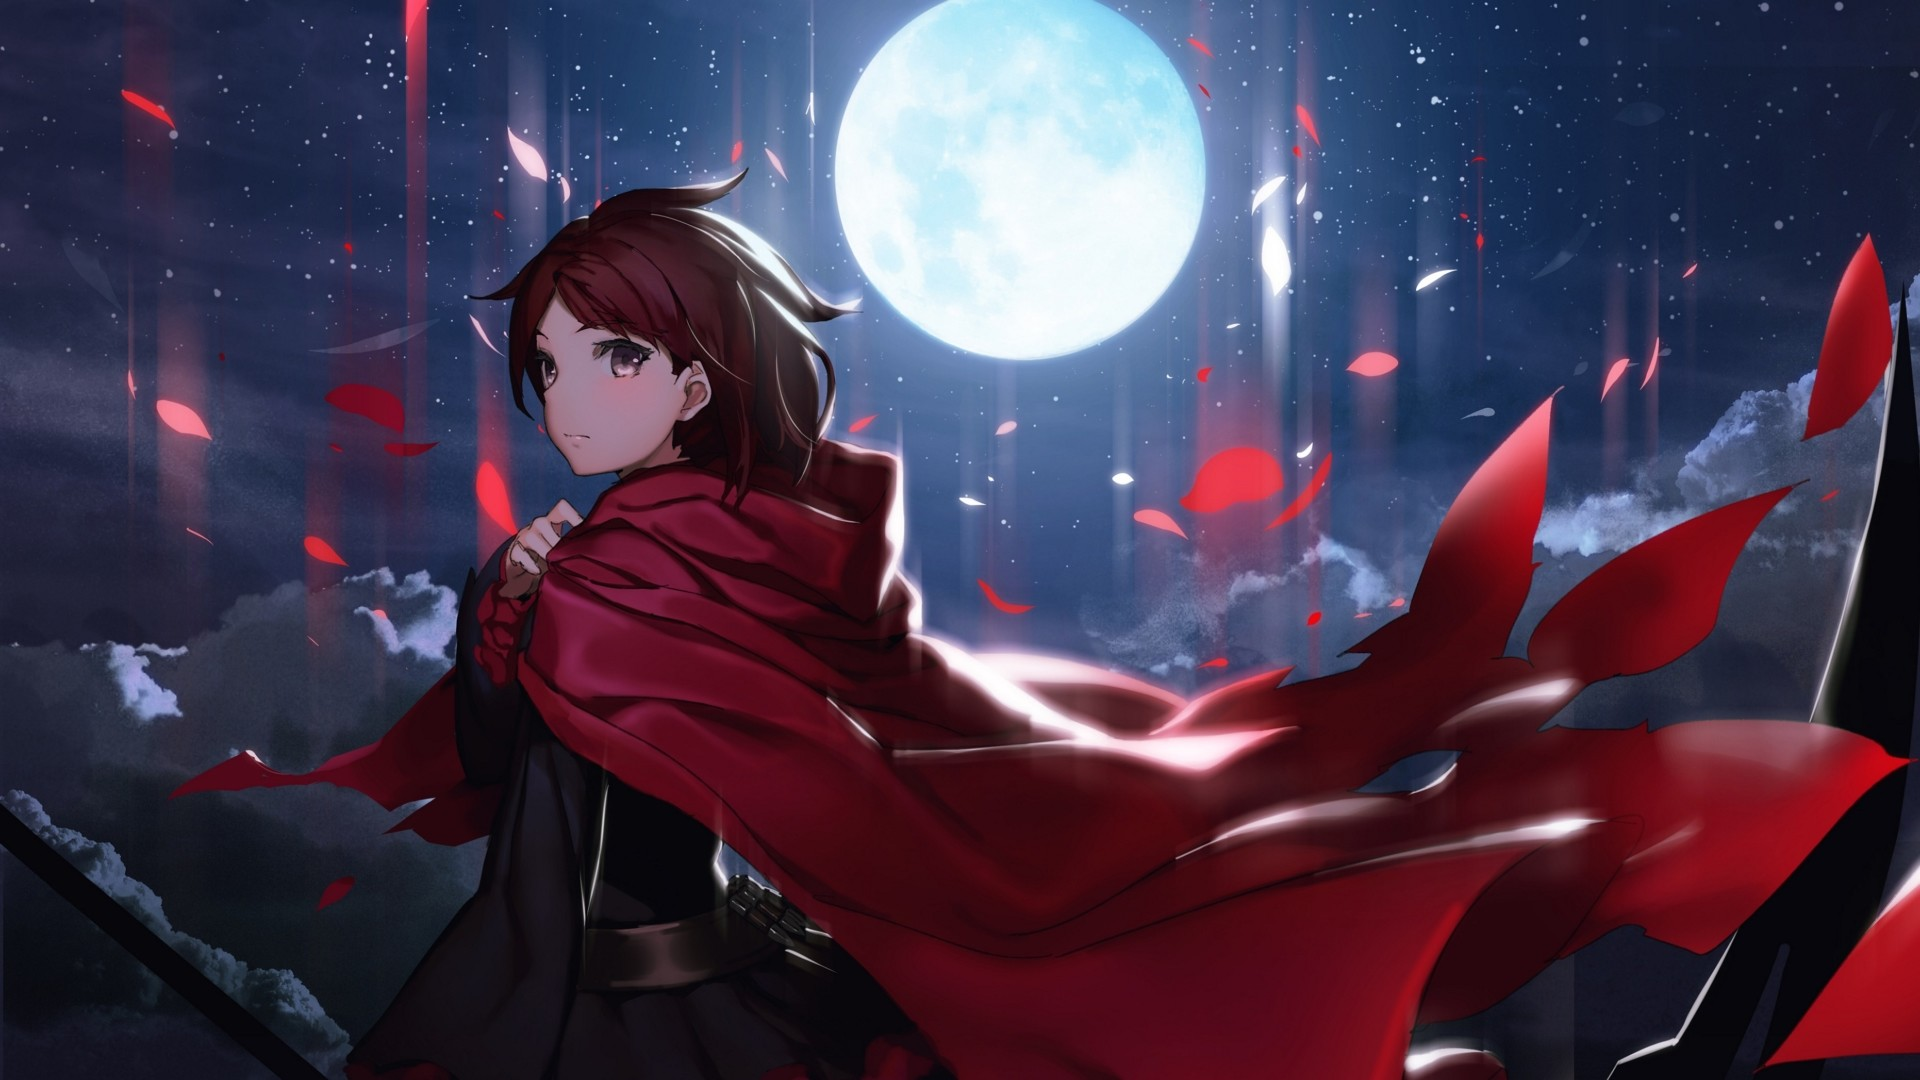 Download Ruby Rose Rwby Majestic Hot Anime Guys Wallpaper In Many  Resolutions